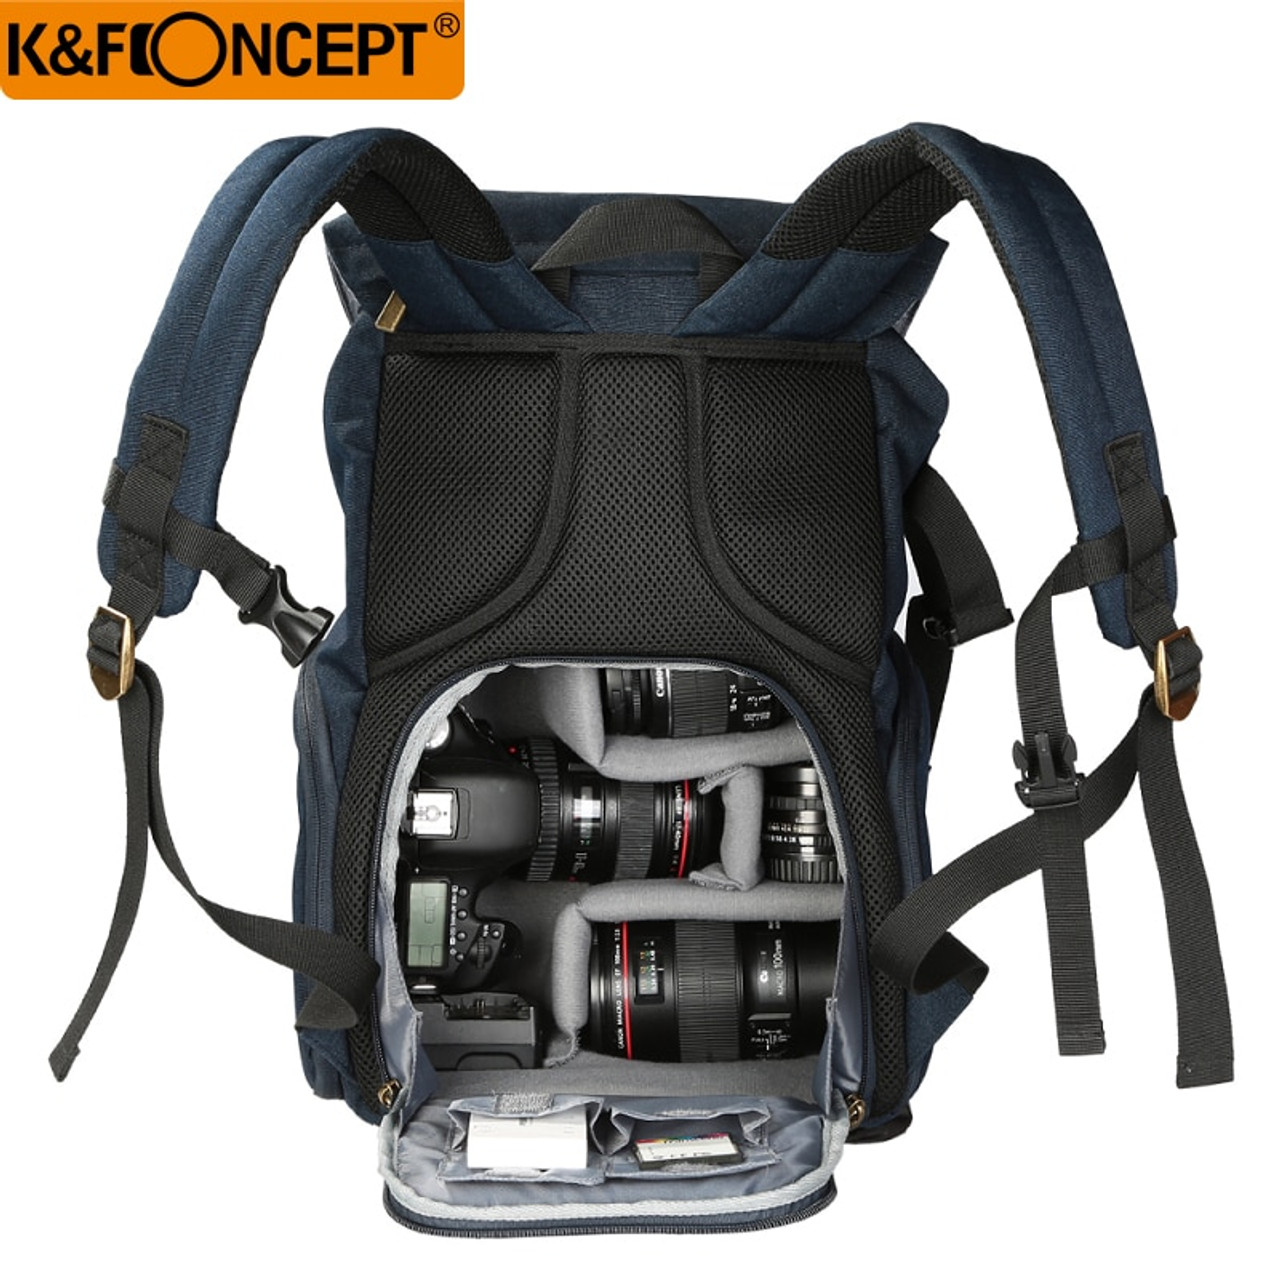 7ebf855947 ... Fast Transport K amp F CONCEPT Large Capacity Multi-functional Waterproof  Camera Backpack Travel Bag ...